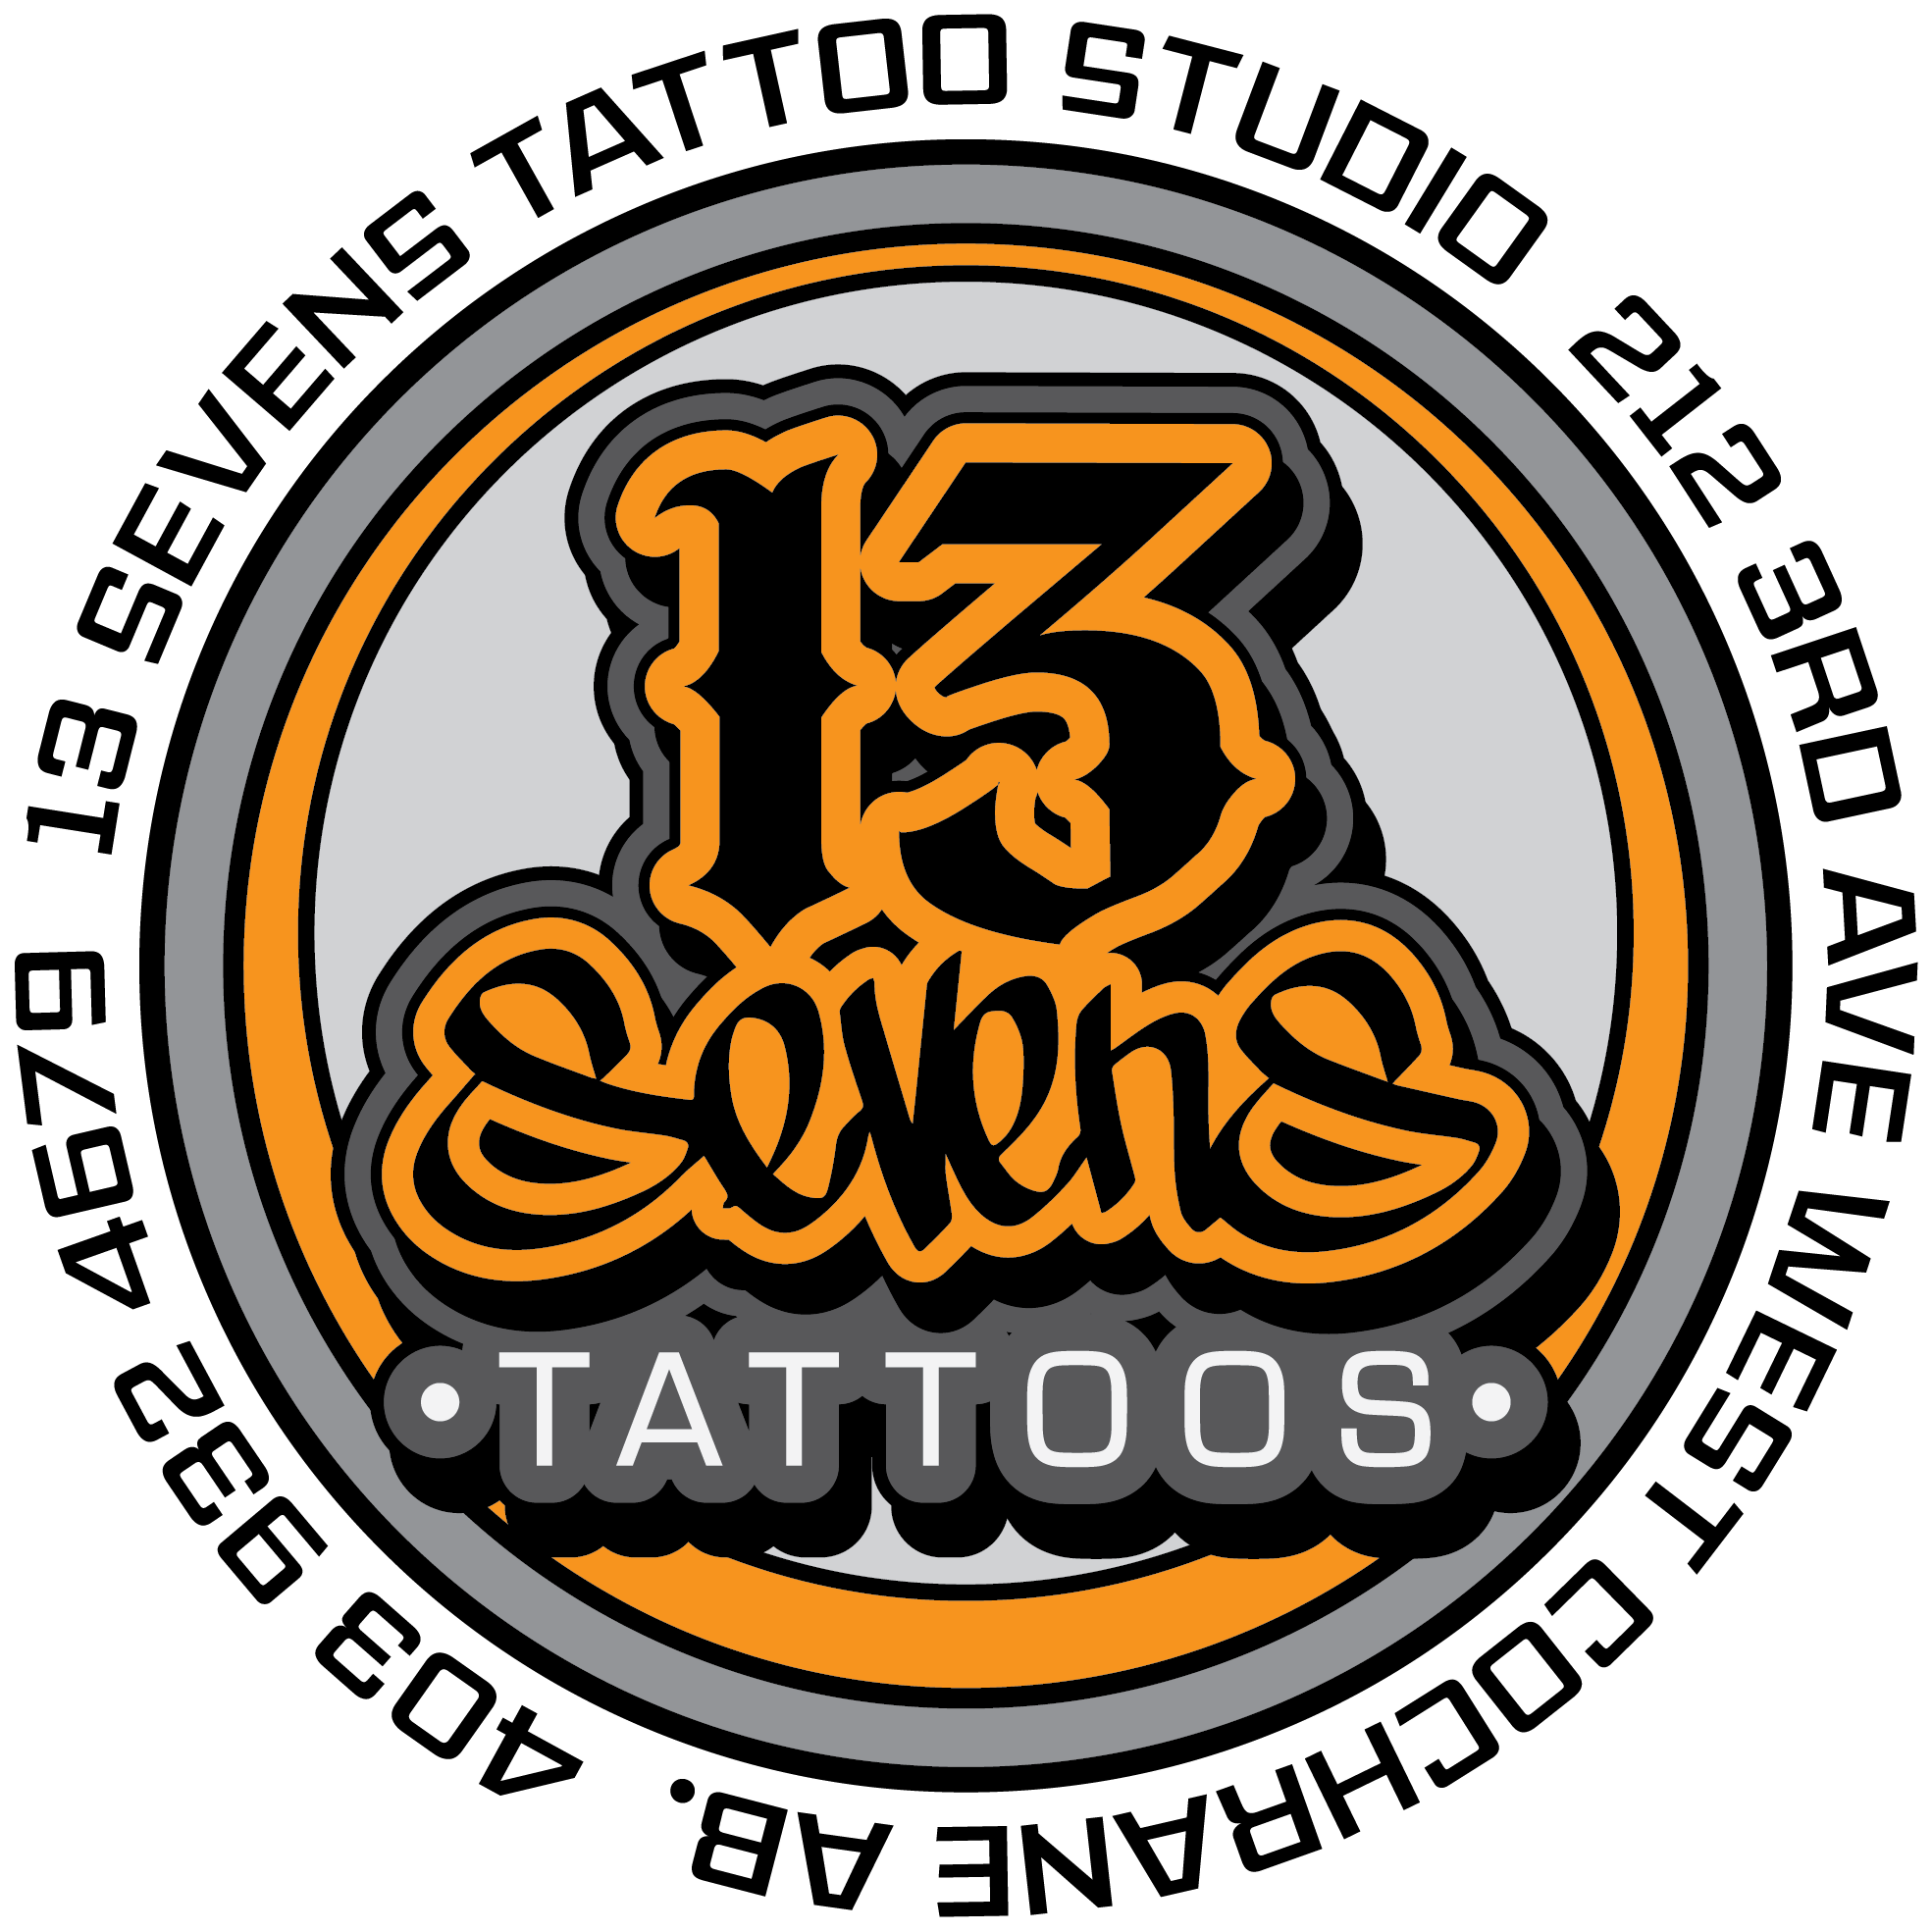 13 Sevens Tattoo Studio